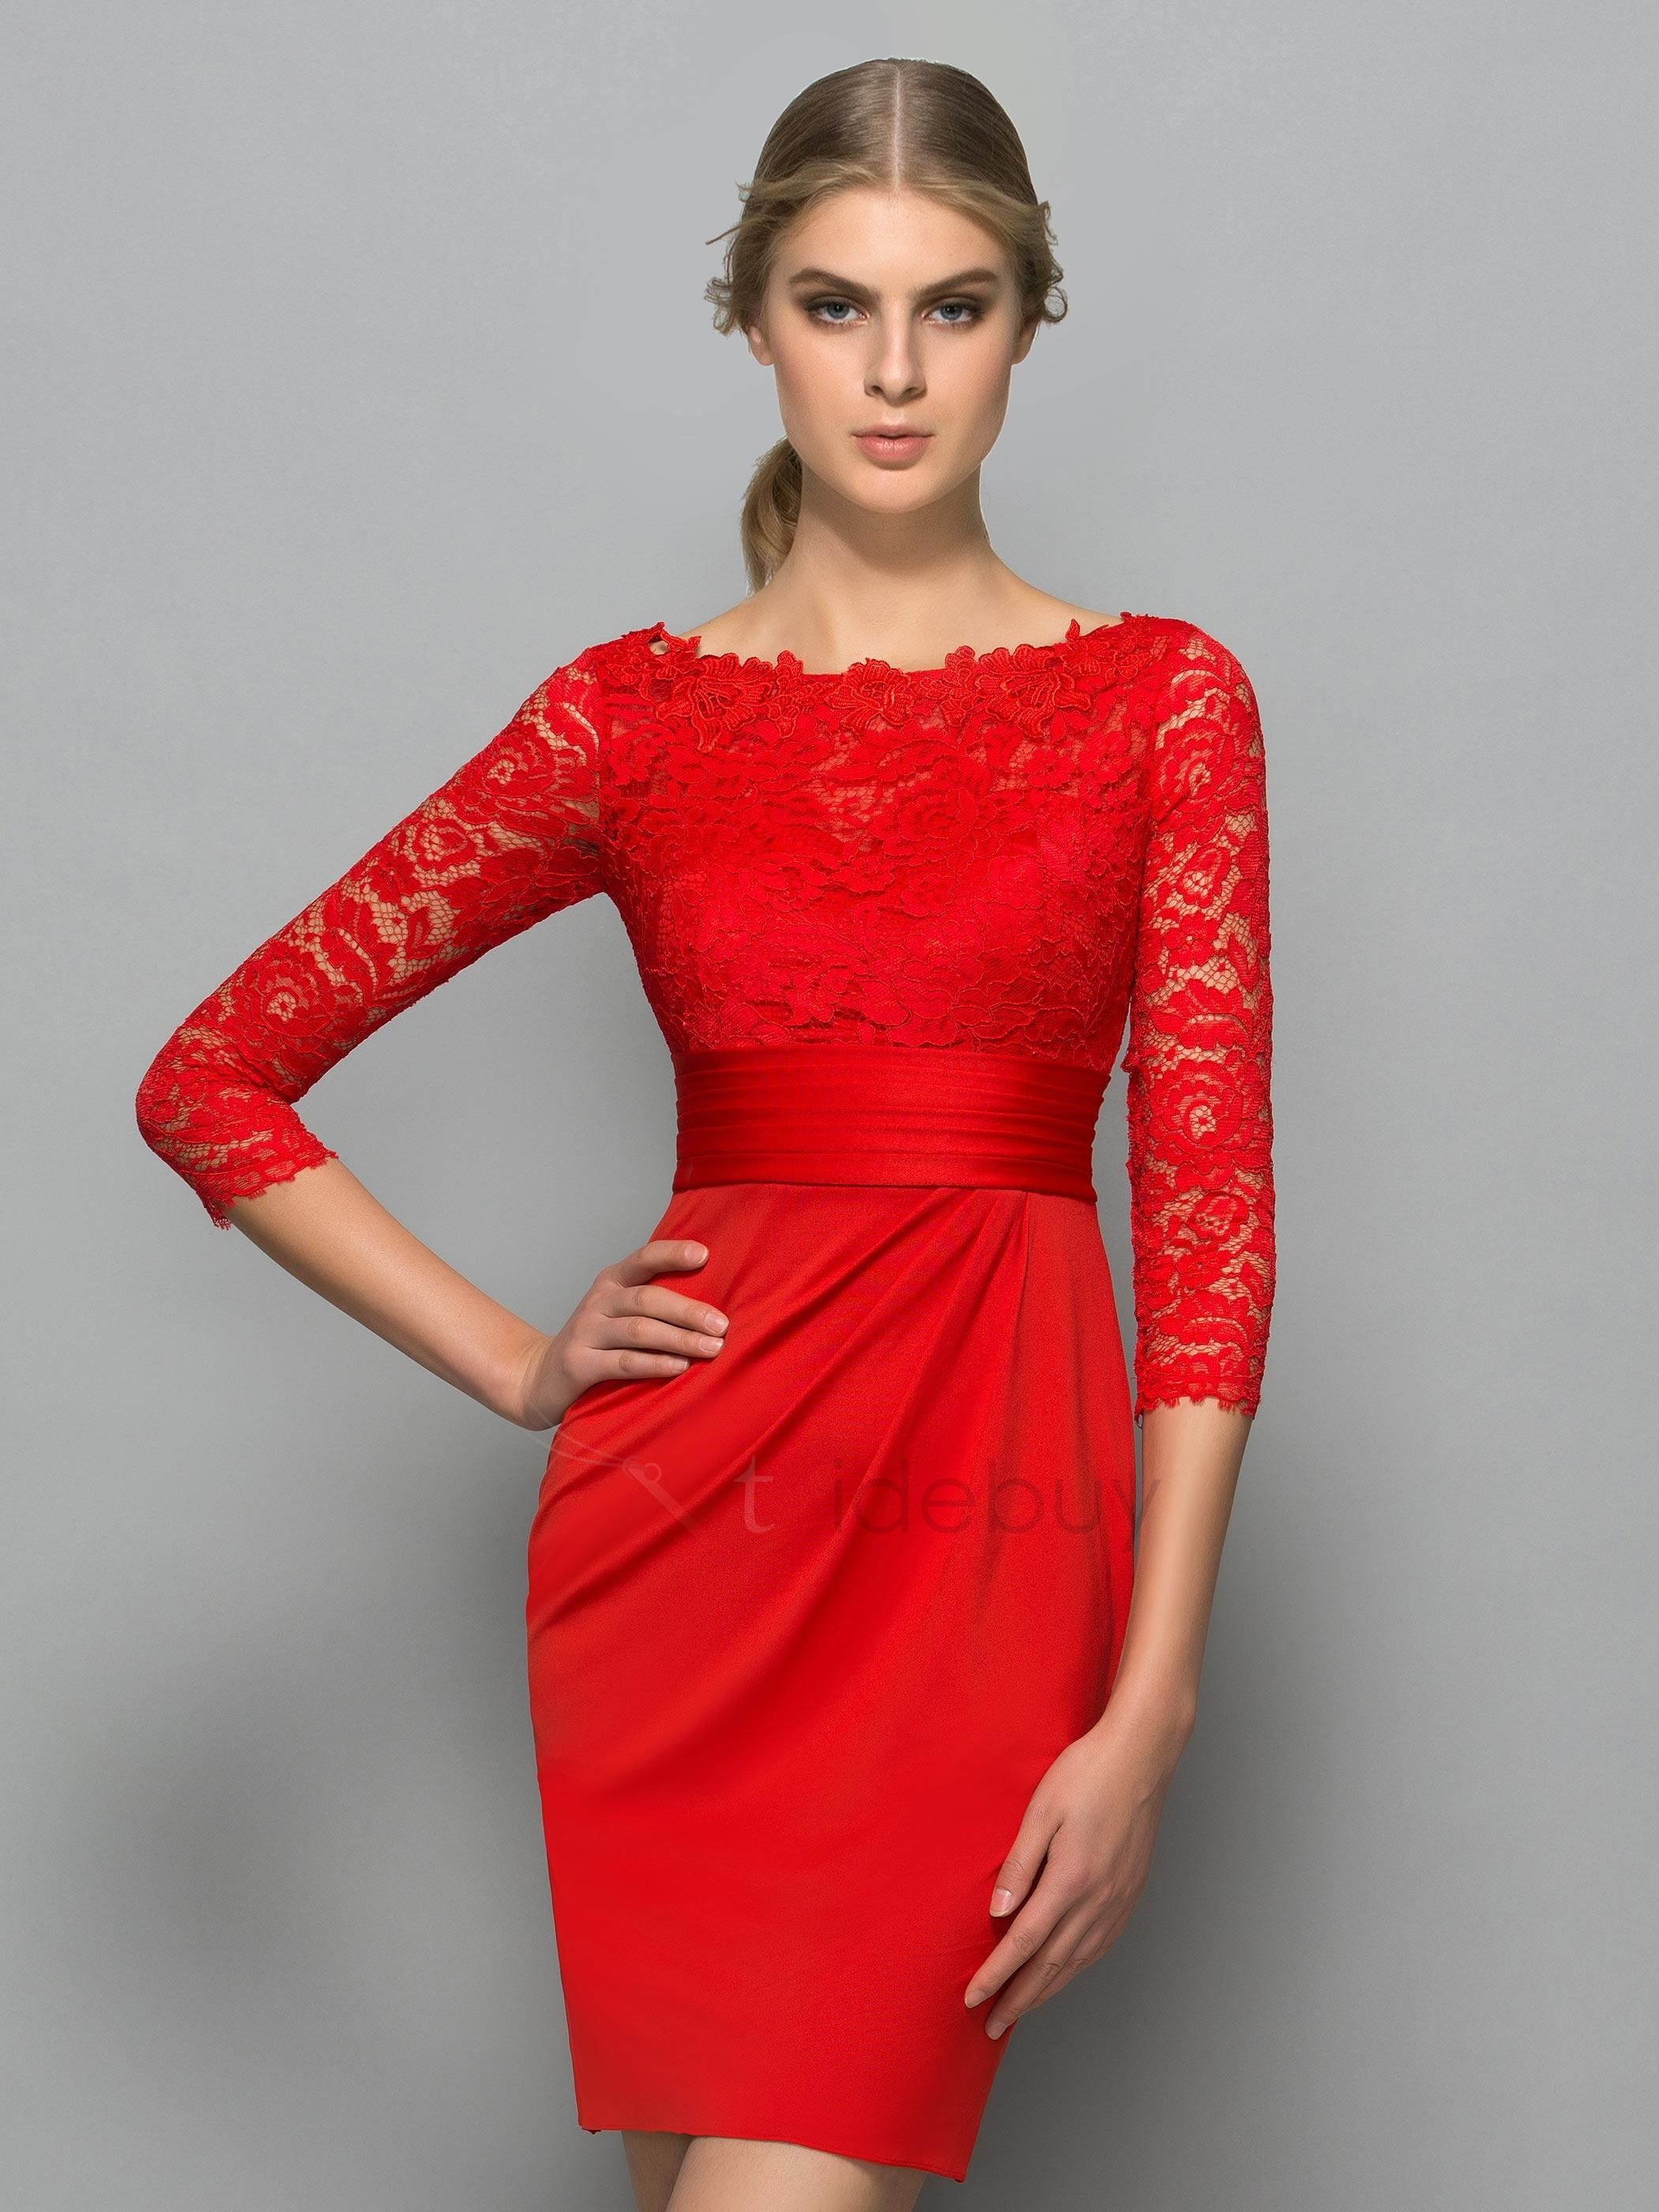 80a314d86fed Tidebuy.com Offers High Quality Classy Bateau Neck 3 4 Length Sleeve Red  Lace Cocktail Dress